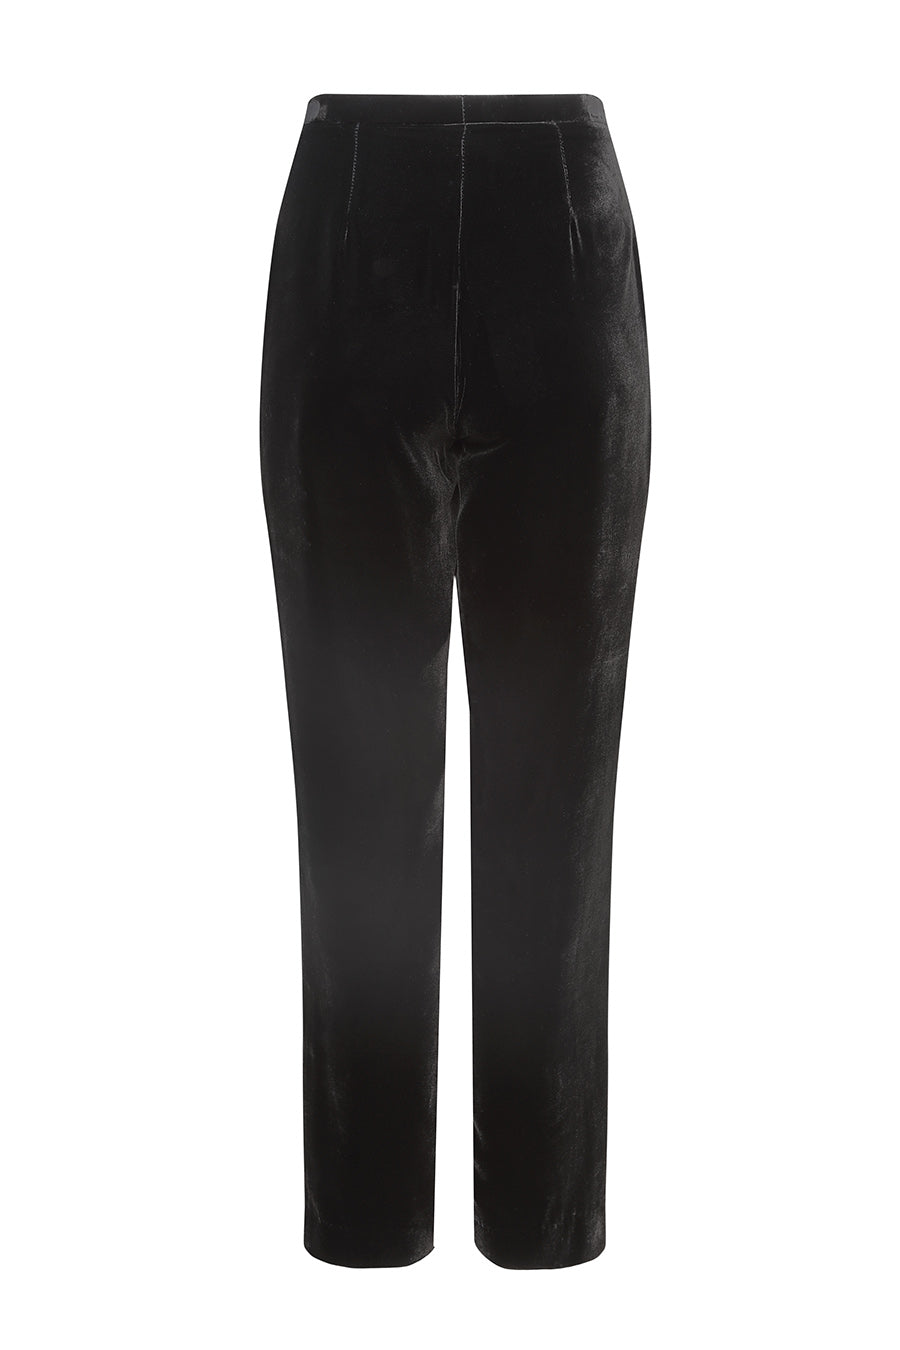 narrow black trousers for womens business outfit